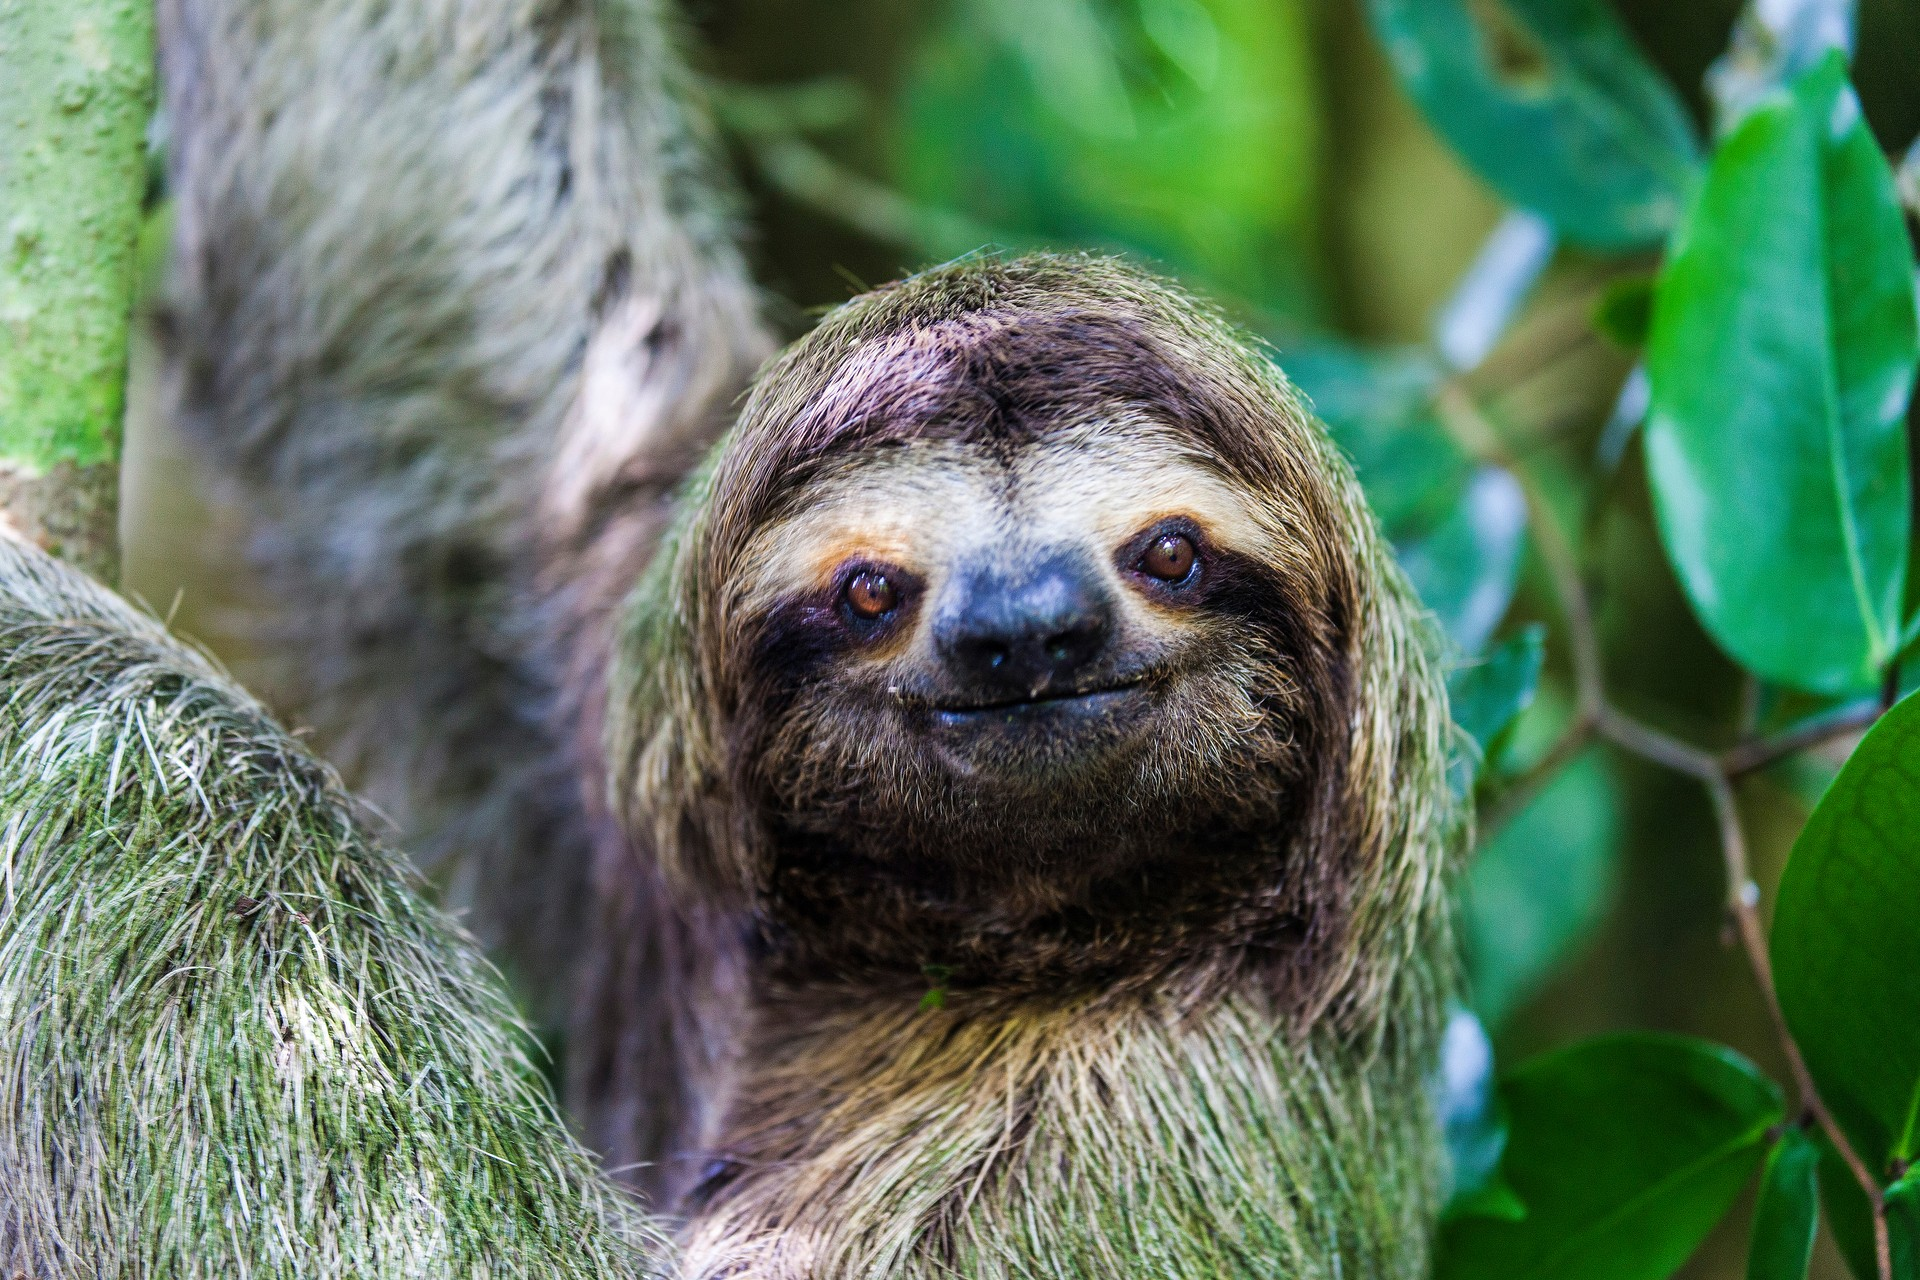 The National Parks of Costa Rica: Sloth